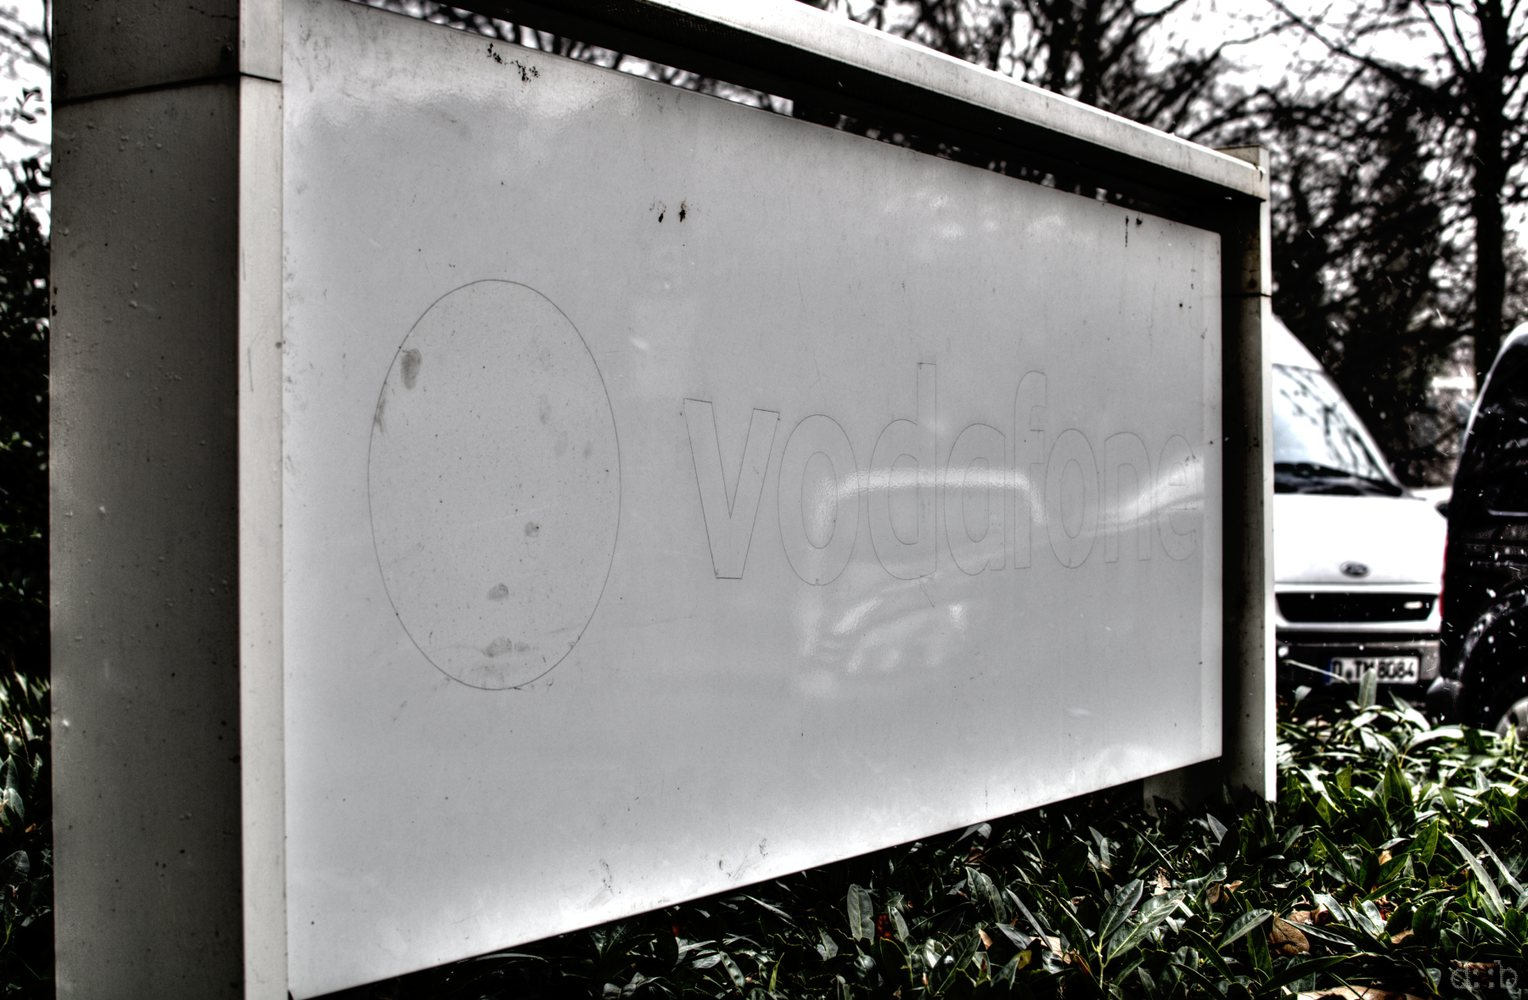 A former company sign, still showing outlines from the removed Vodafone logo